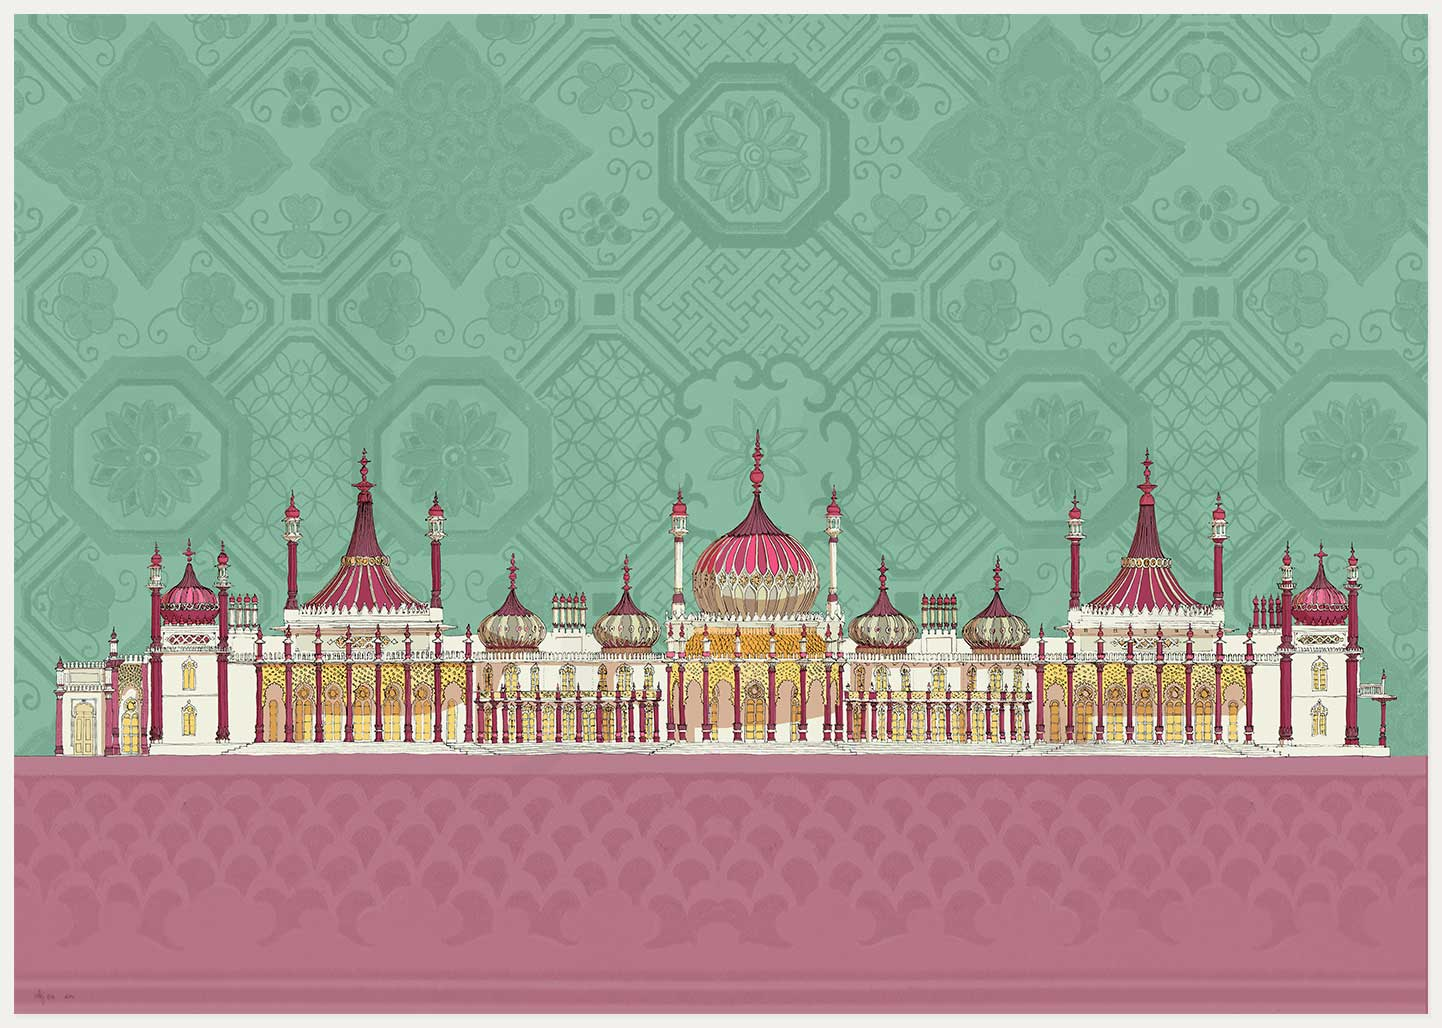 print named Brighton Royal Pavilion Life by artist alej ez